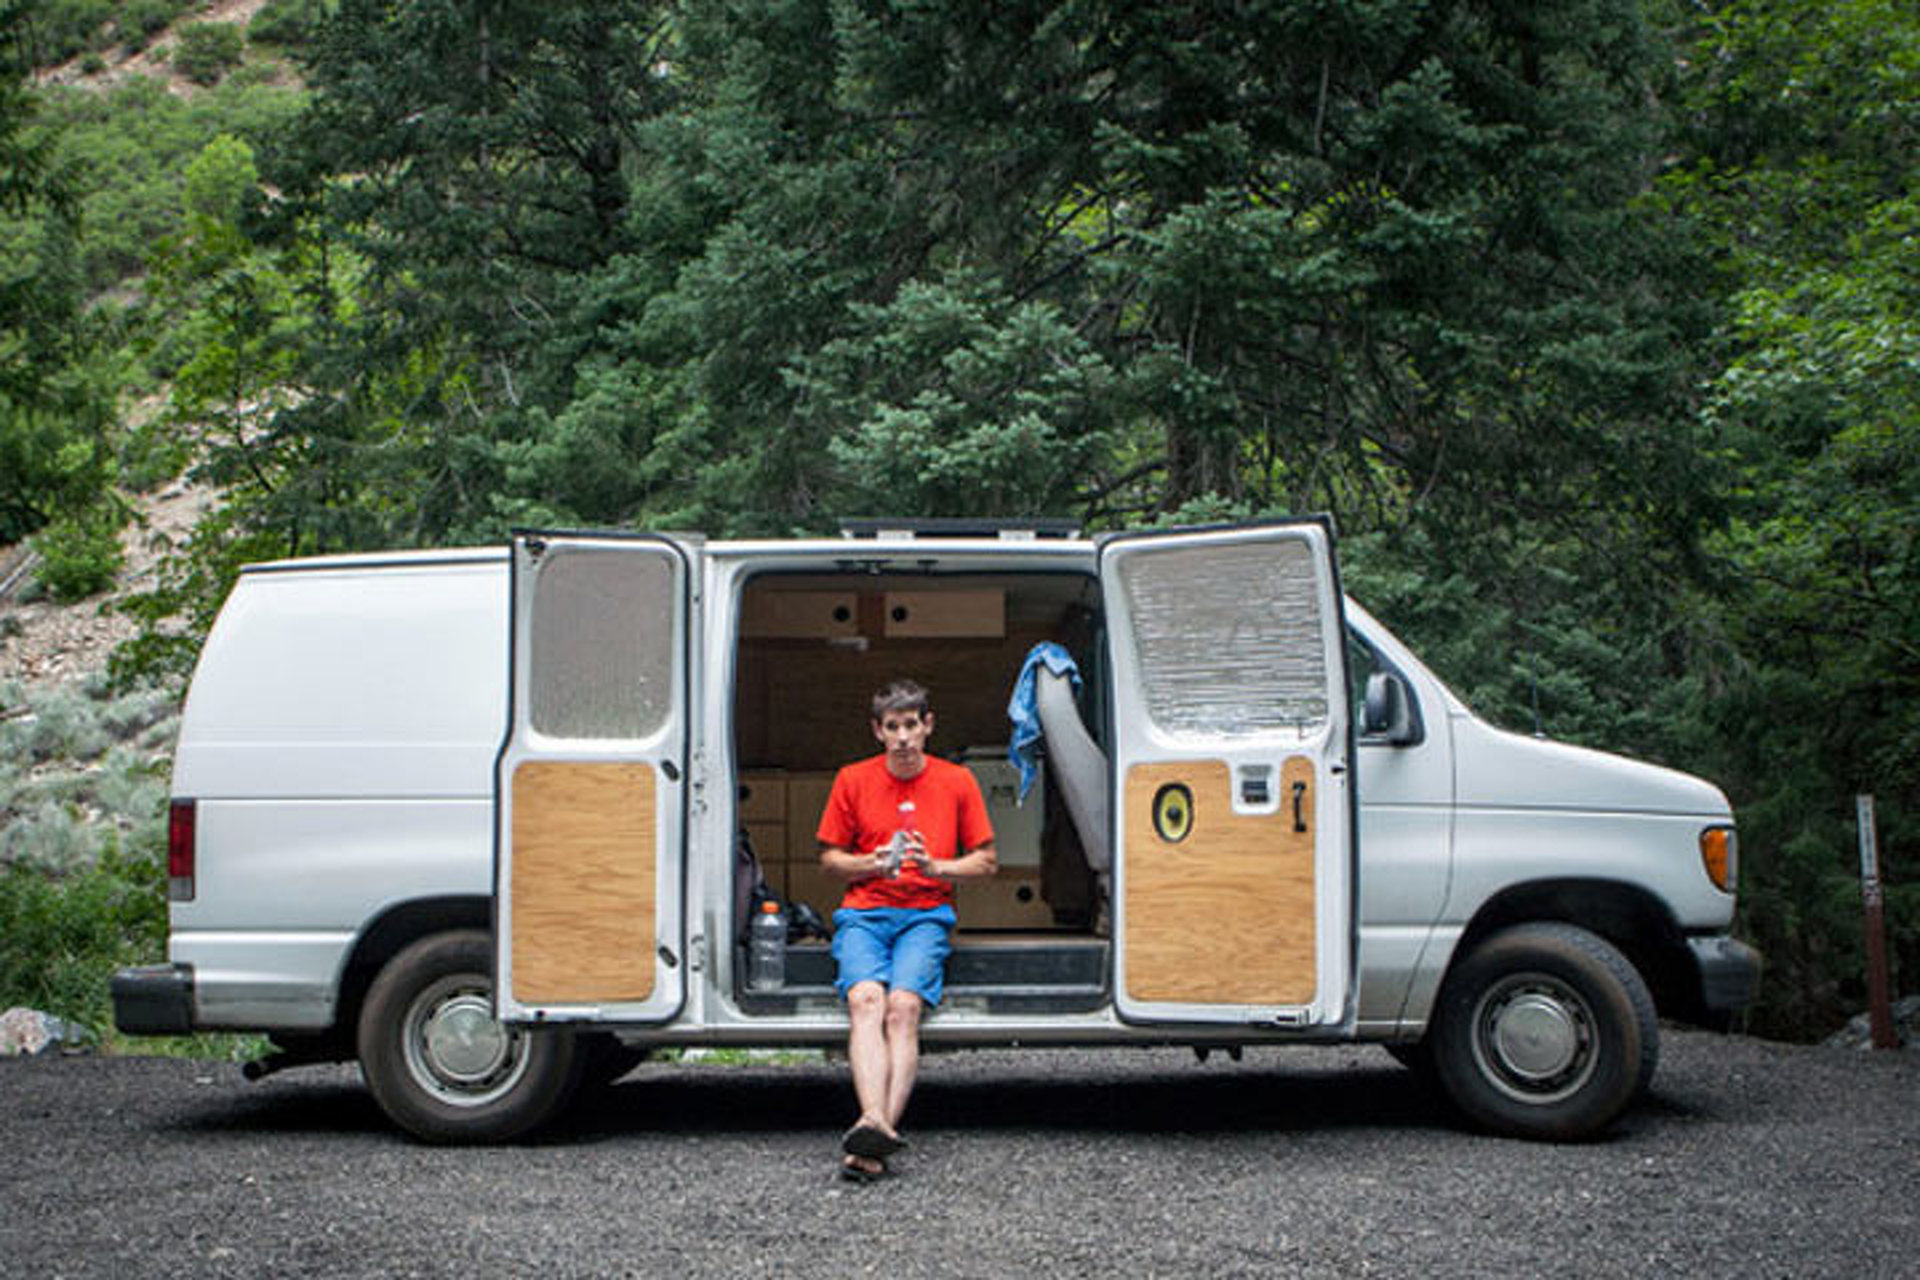 This Pro Climber Lives Close to the Cliffs in a Ford Van